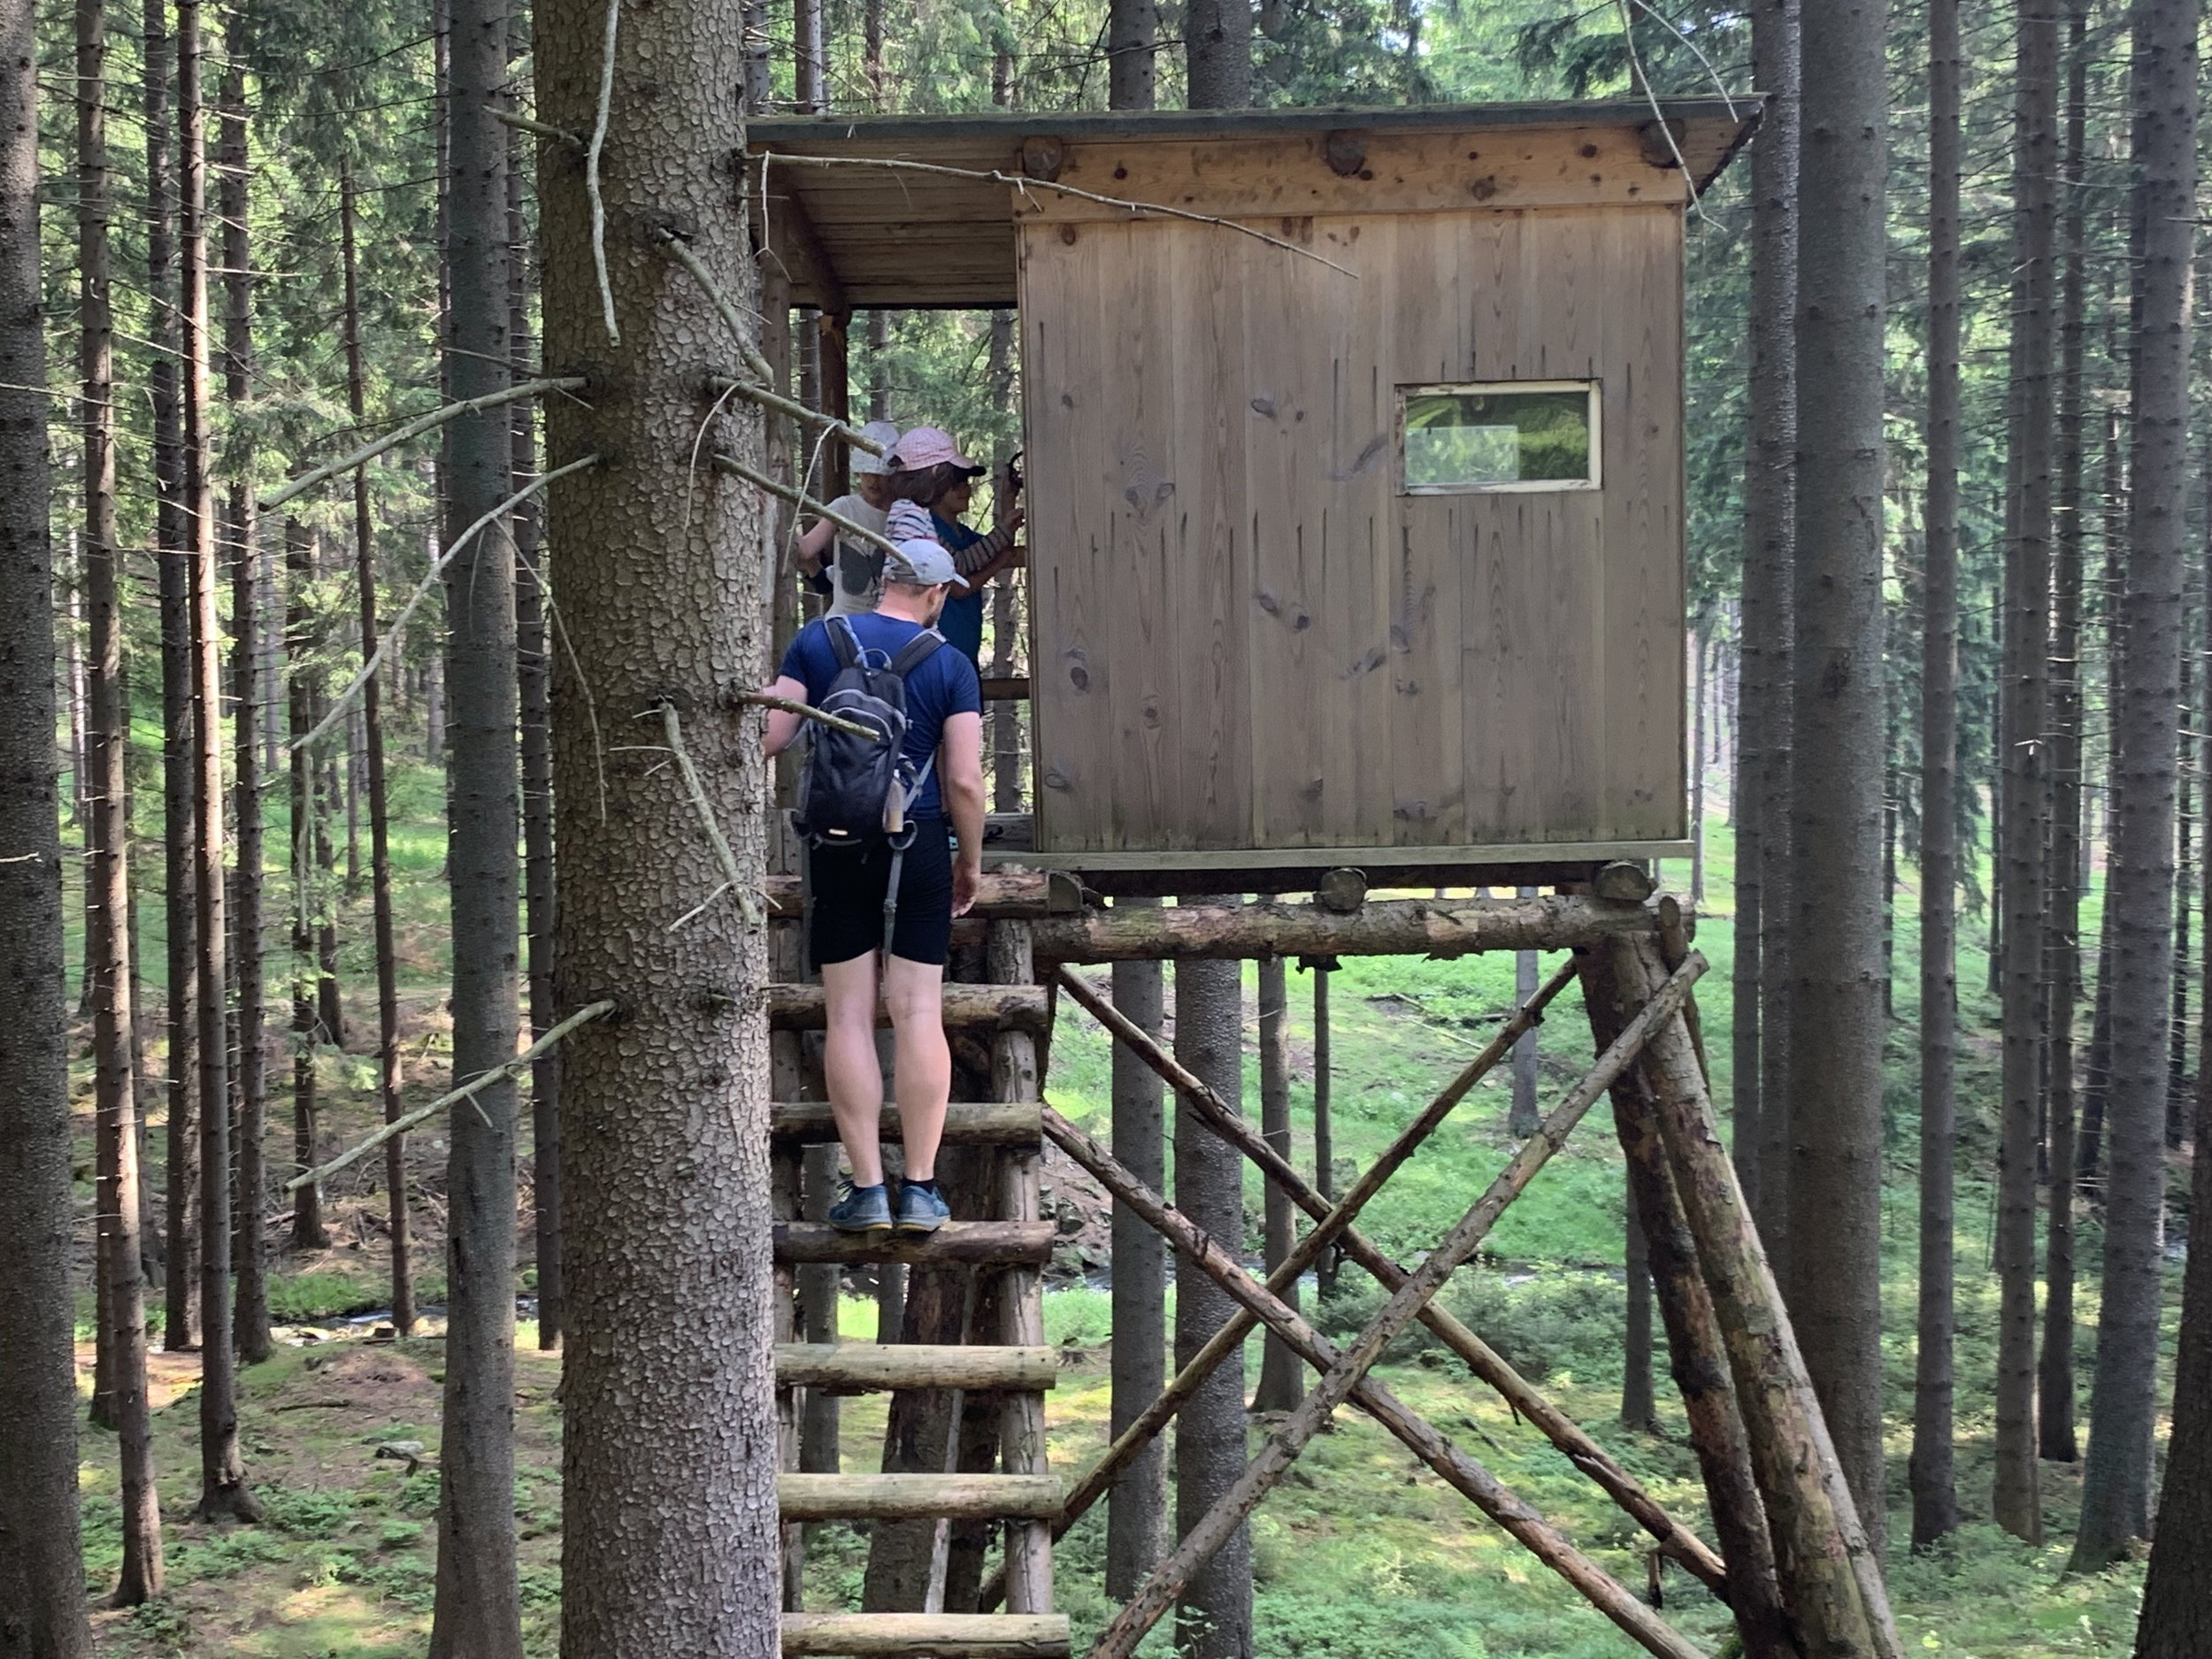 Finding a random lookout point in the woods